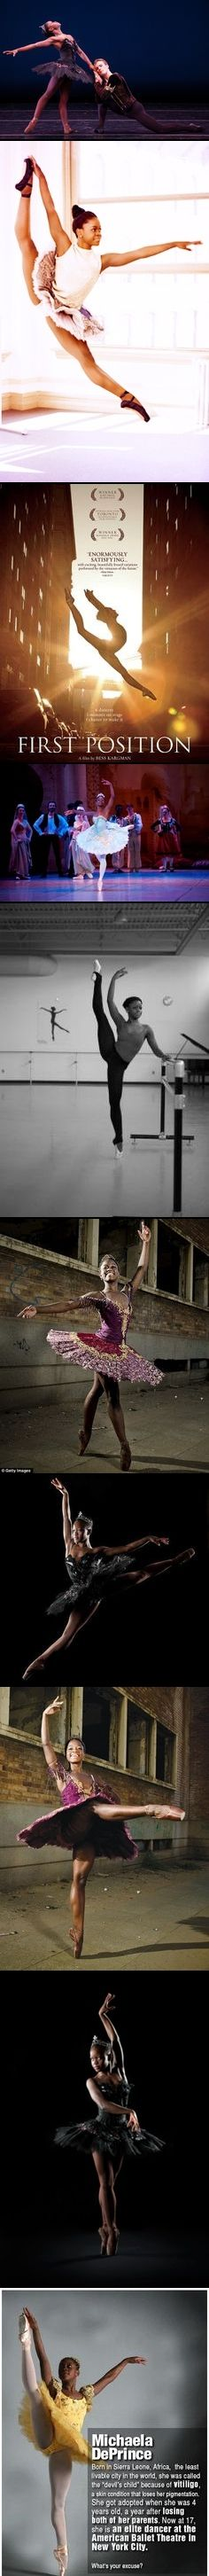 """Michaela DePrince - In July 2012 was invited to South Africa to dance with the South African Manszi Ballet Company.  She danced the role of Gulnare in its production of Le Corsaire.   """"Le Corsaire is a very difficult but magnificent ballet.""""  What Michaela liked best about her trip to South Africa was that she not only had the opportunity to prove that black ballerinas can dance classical ballet, but also she was given the chance to serve as a role model to young people there."""